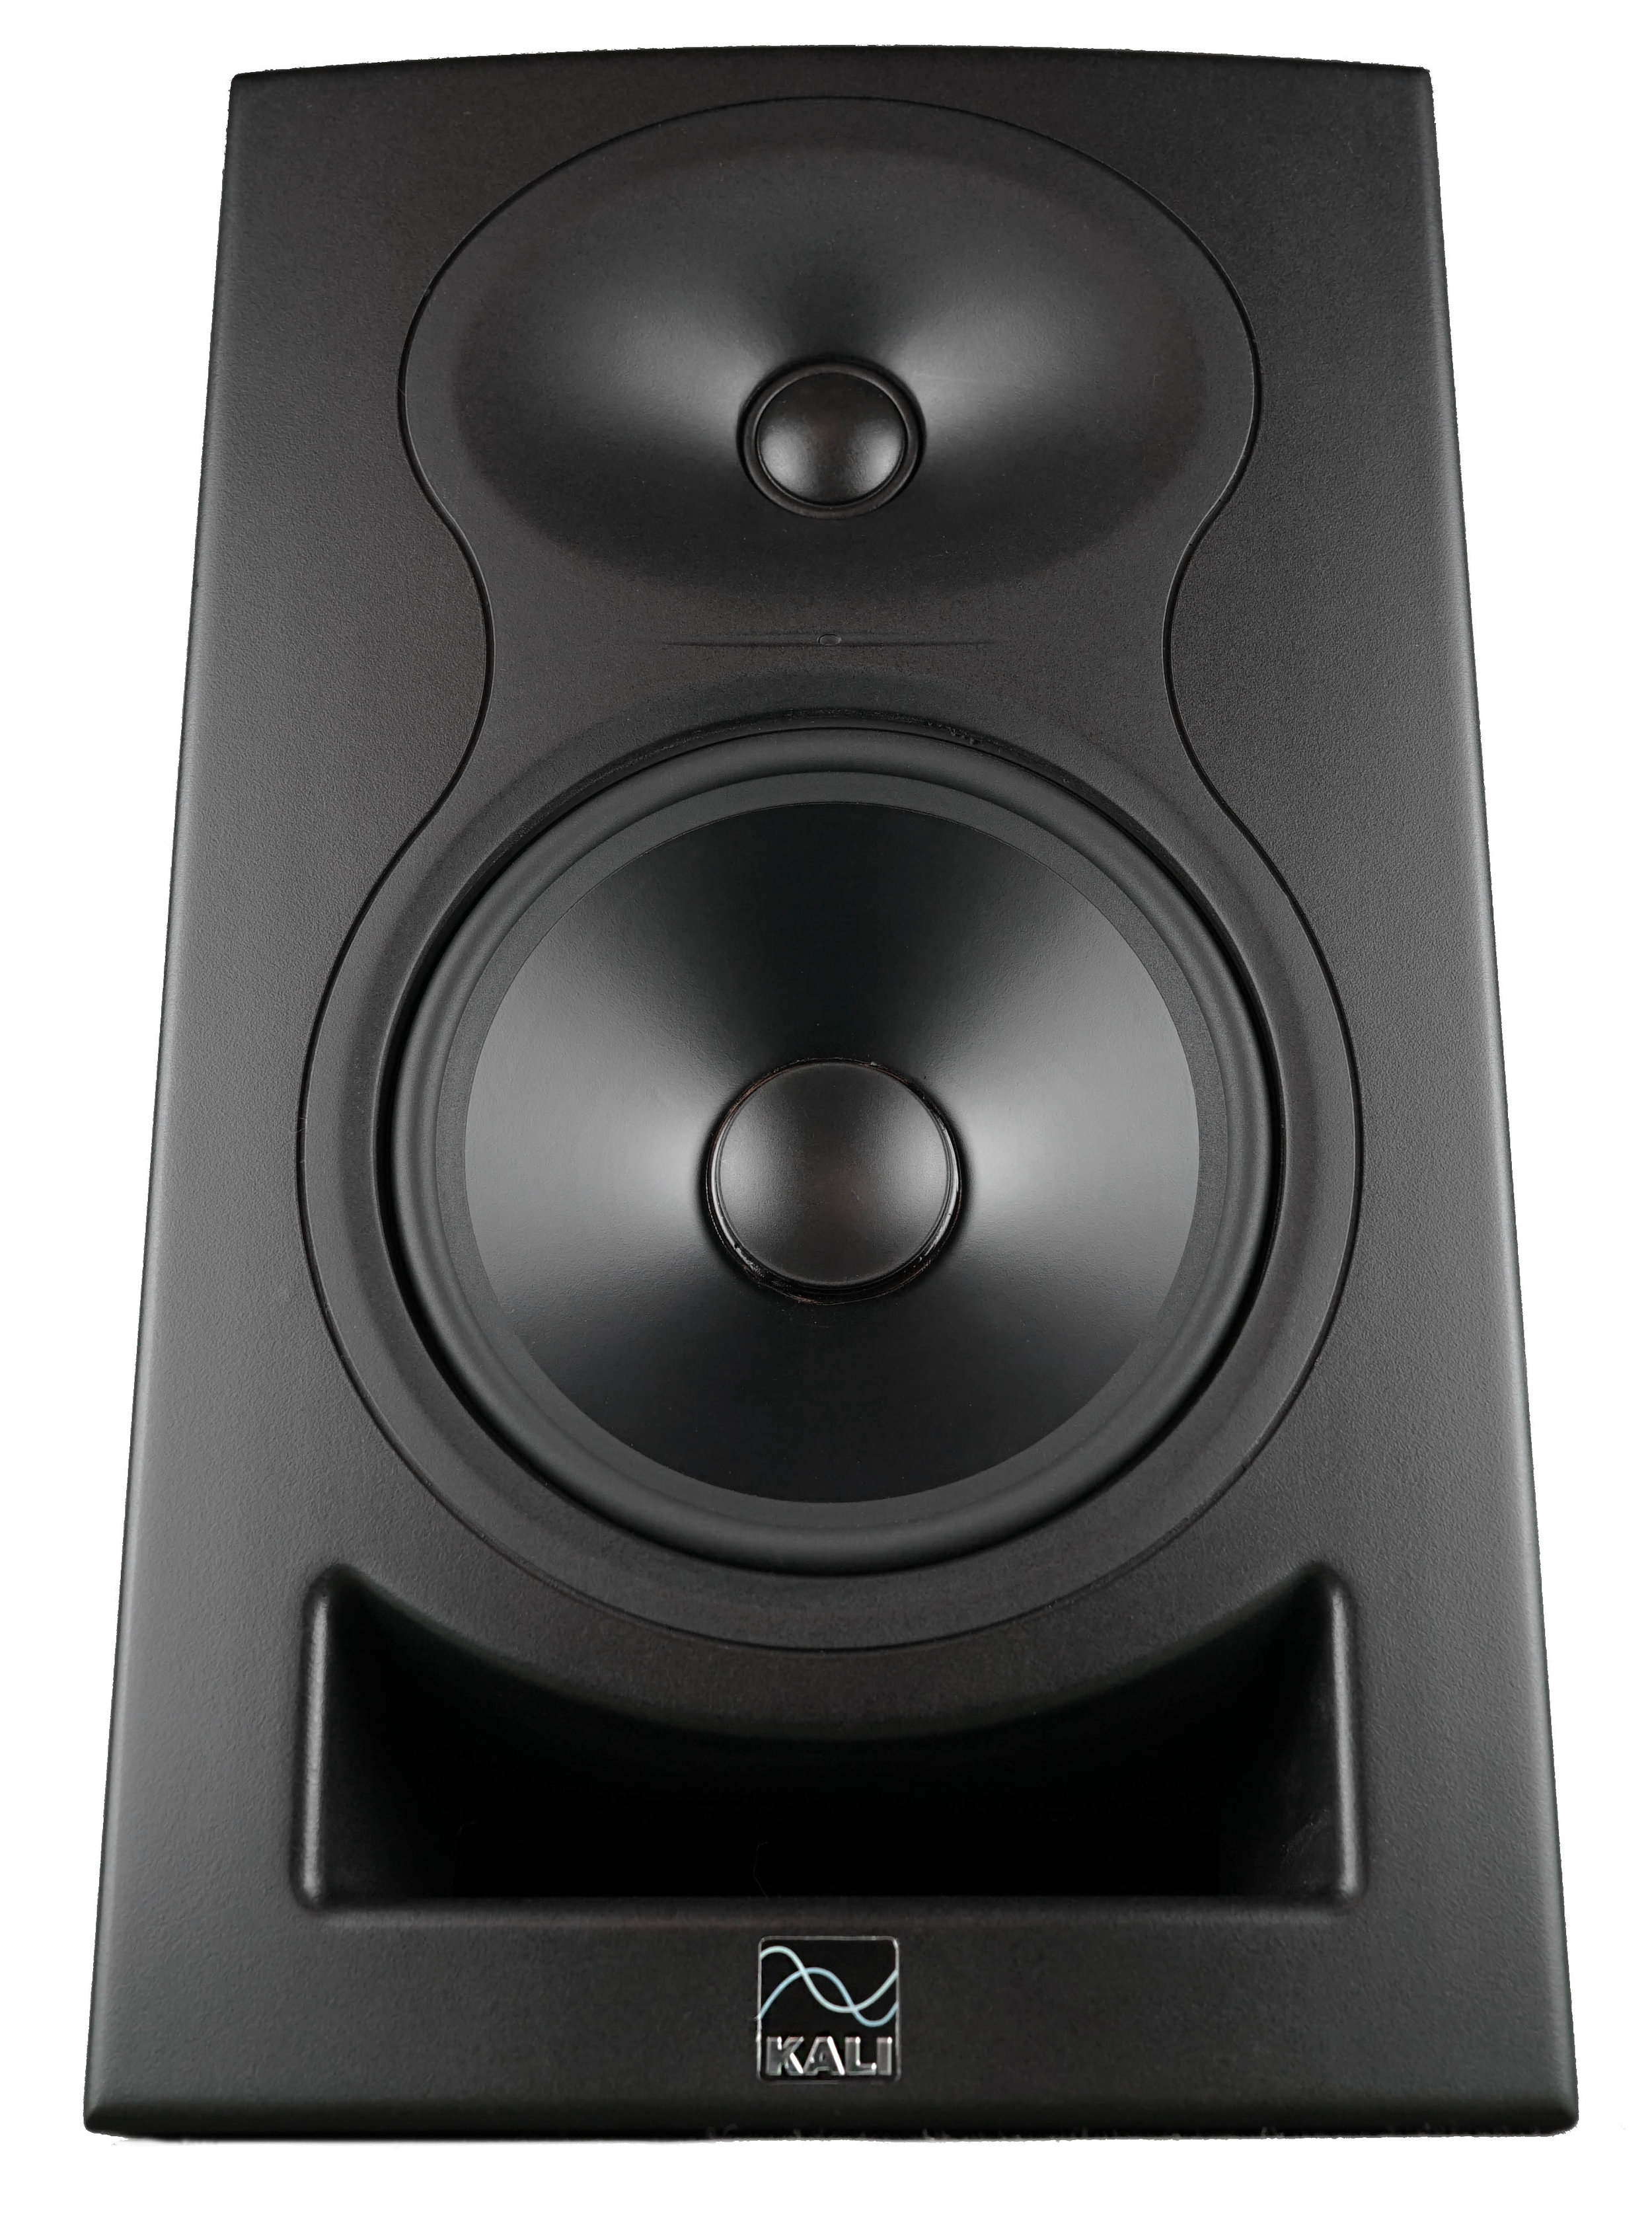 High Output - With 85 dB continuous output at 2 meters (roughly 6 feet,) and 20 dB of headroom, the LP-6 is plenty loud for almost every 1 or 2 person listening space. This includes home studios, editing bays, and most control rooms.Ample headroom ensures that even loud mixes with high dynamic range will come through clearly.